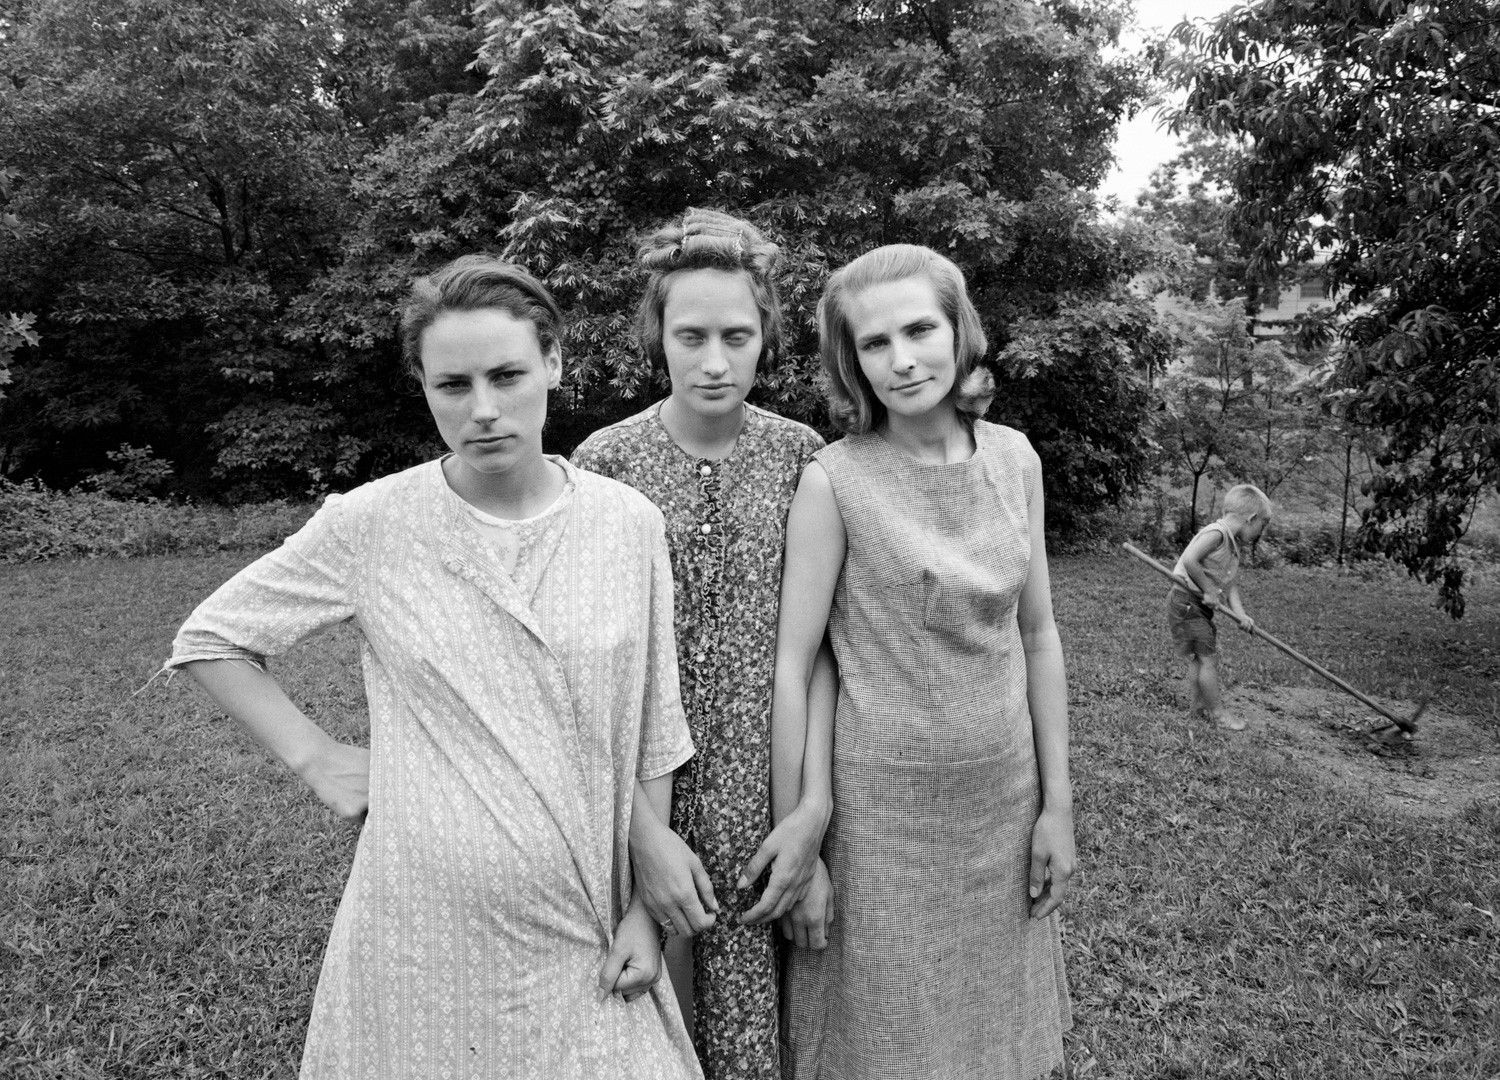 Emmet Gowin, Edith, Ruth and Mae, Danville, Virginia, 1967